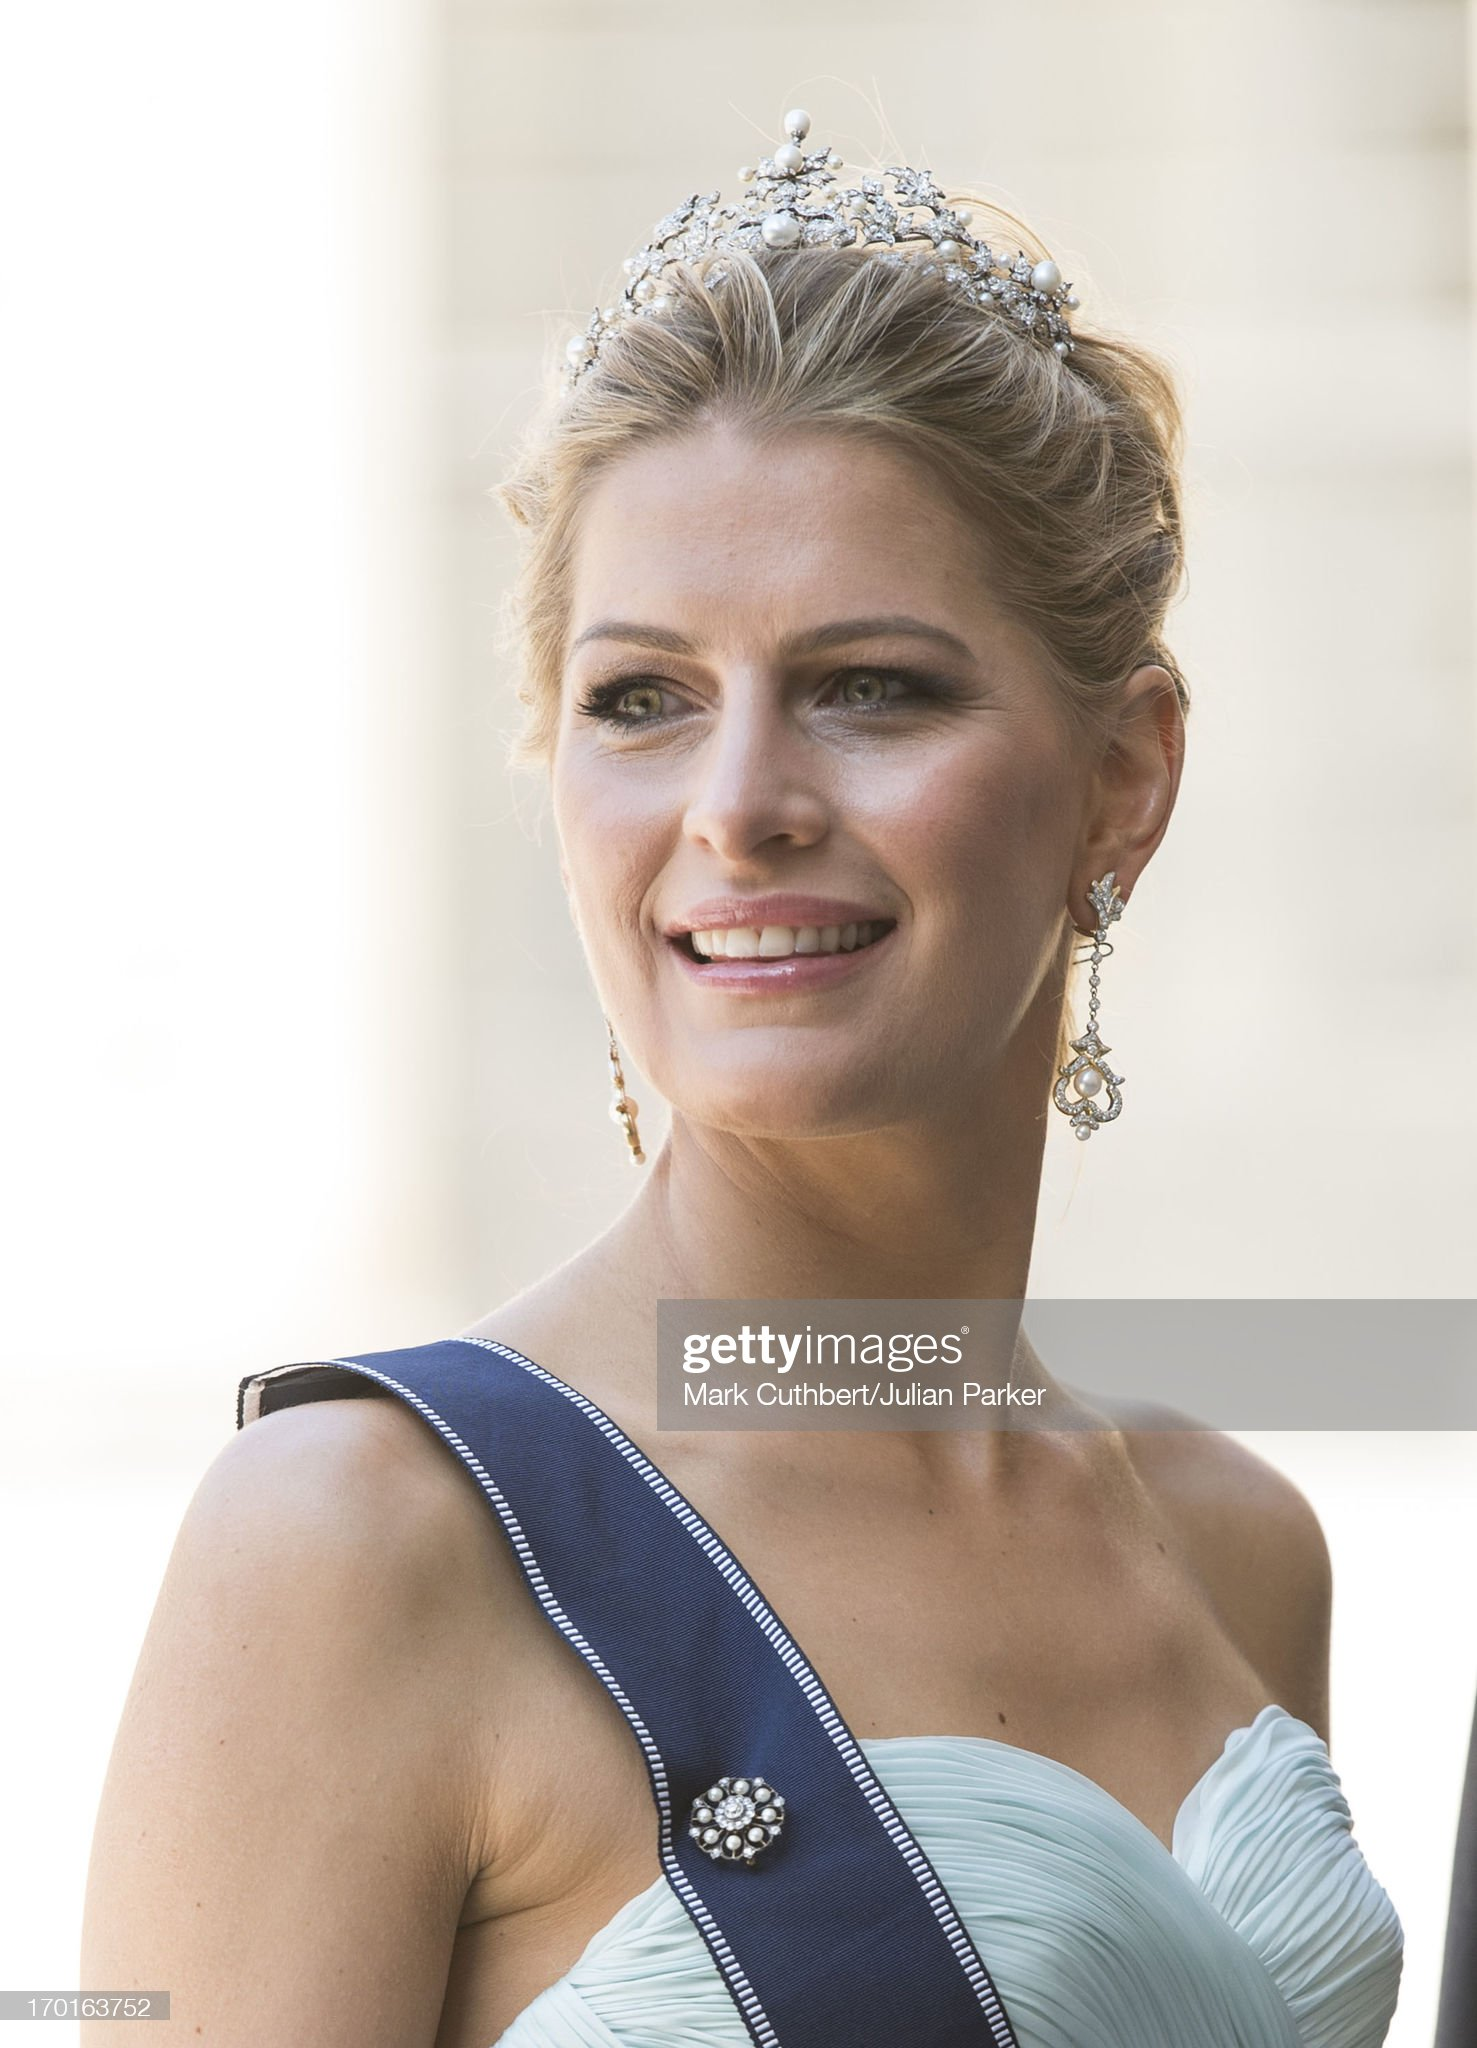 Wedding Of Princess Madeleine & Christopher O'Neill : News Photo